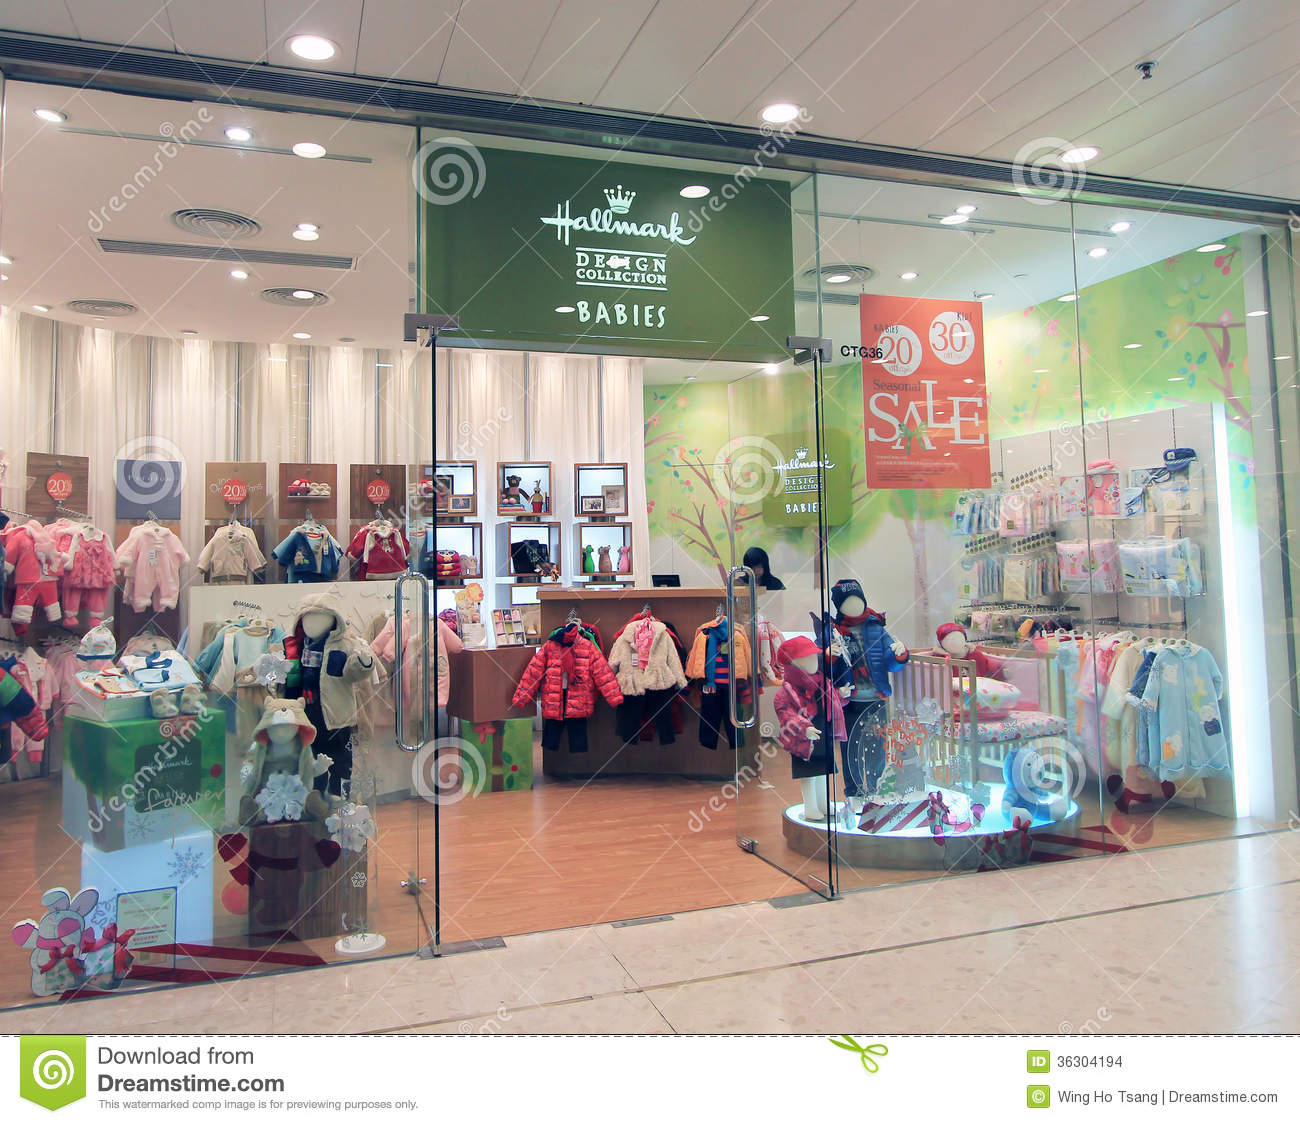 Hong Kong Shopping: Hallmark Shop In Hong Kong Editorial Stock Image